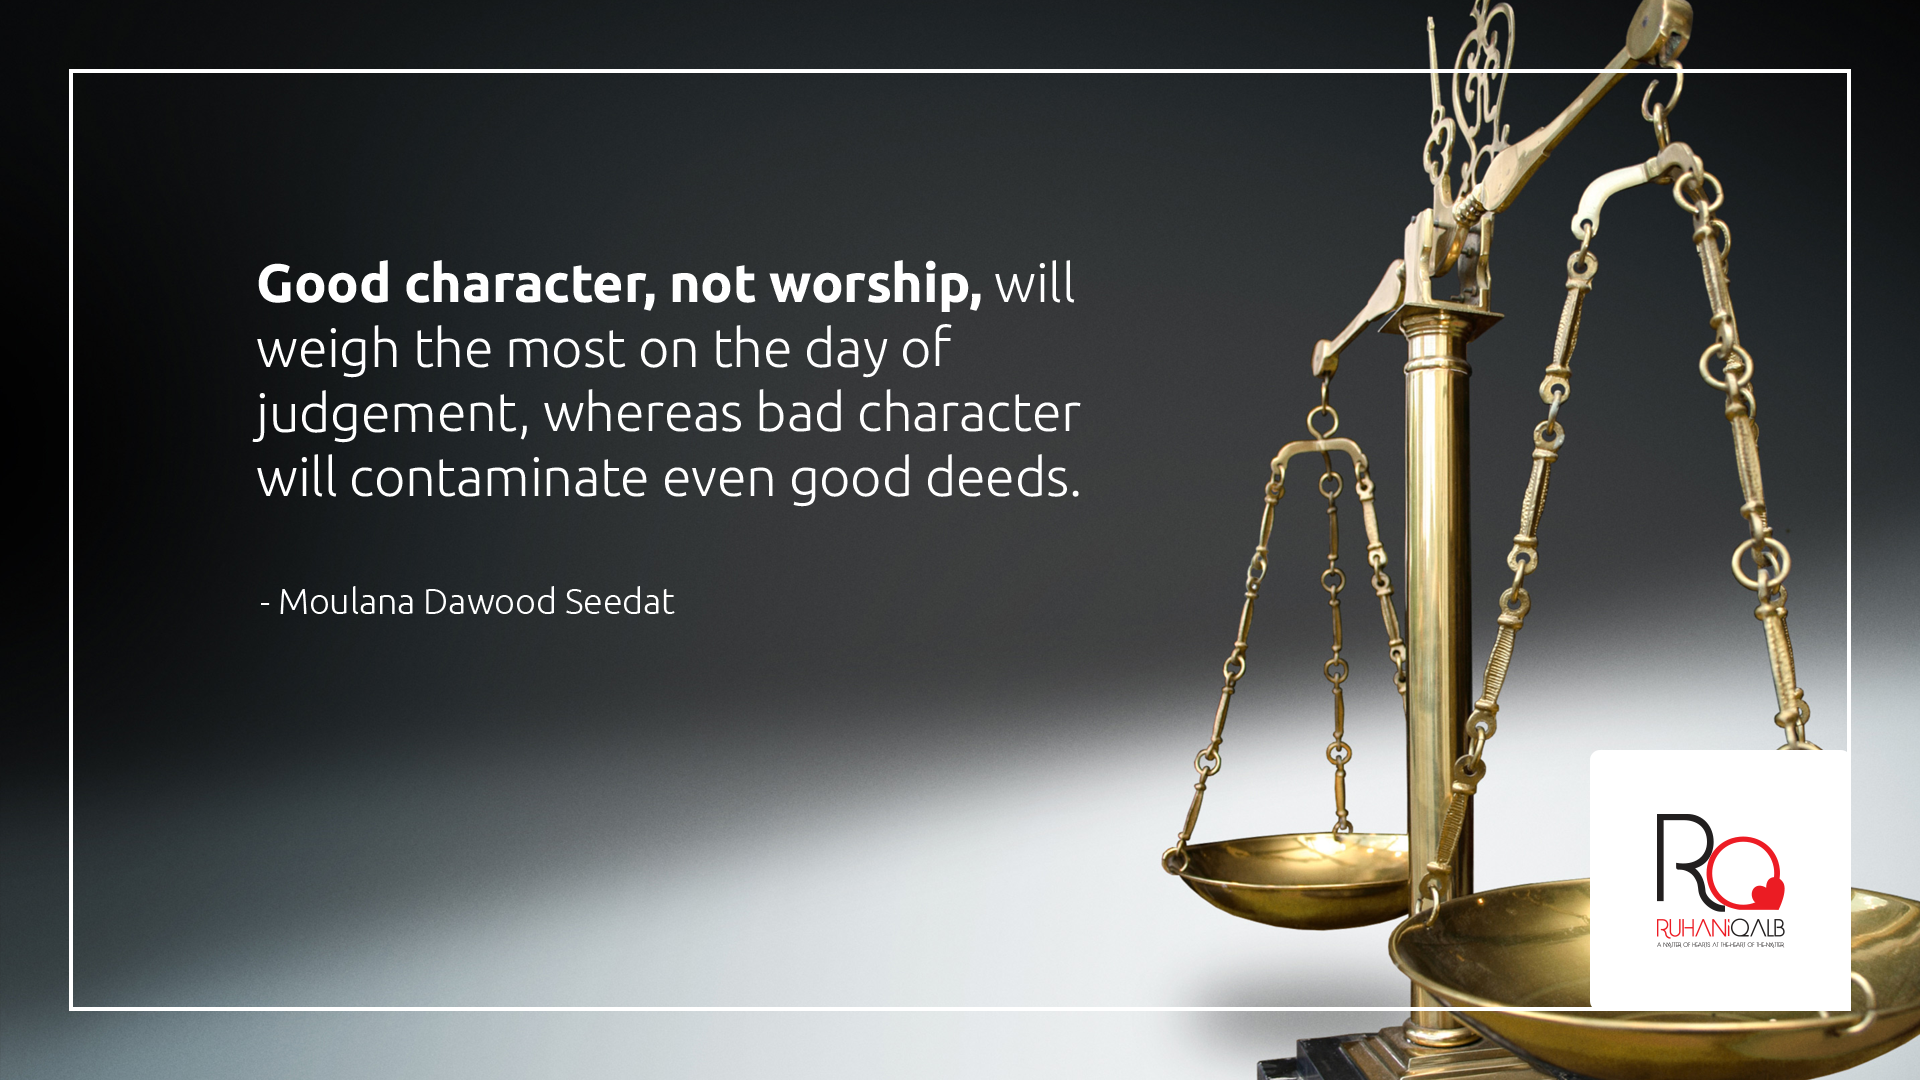 Good-character-will-weigh-the-most-on-the-day-of-judgement